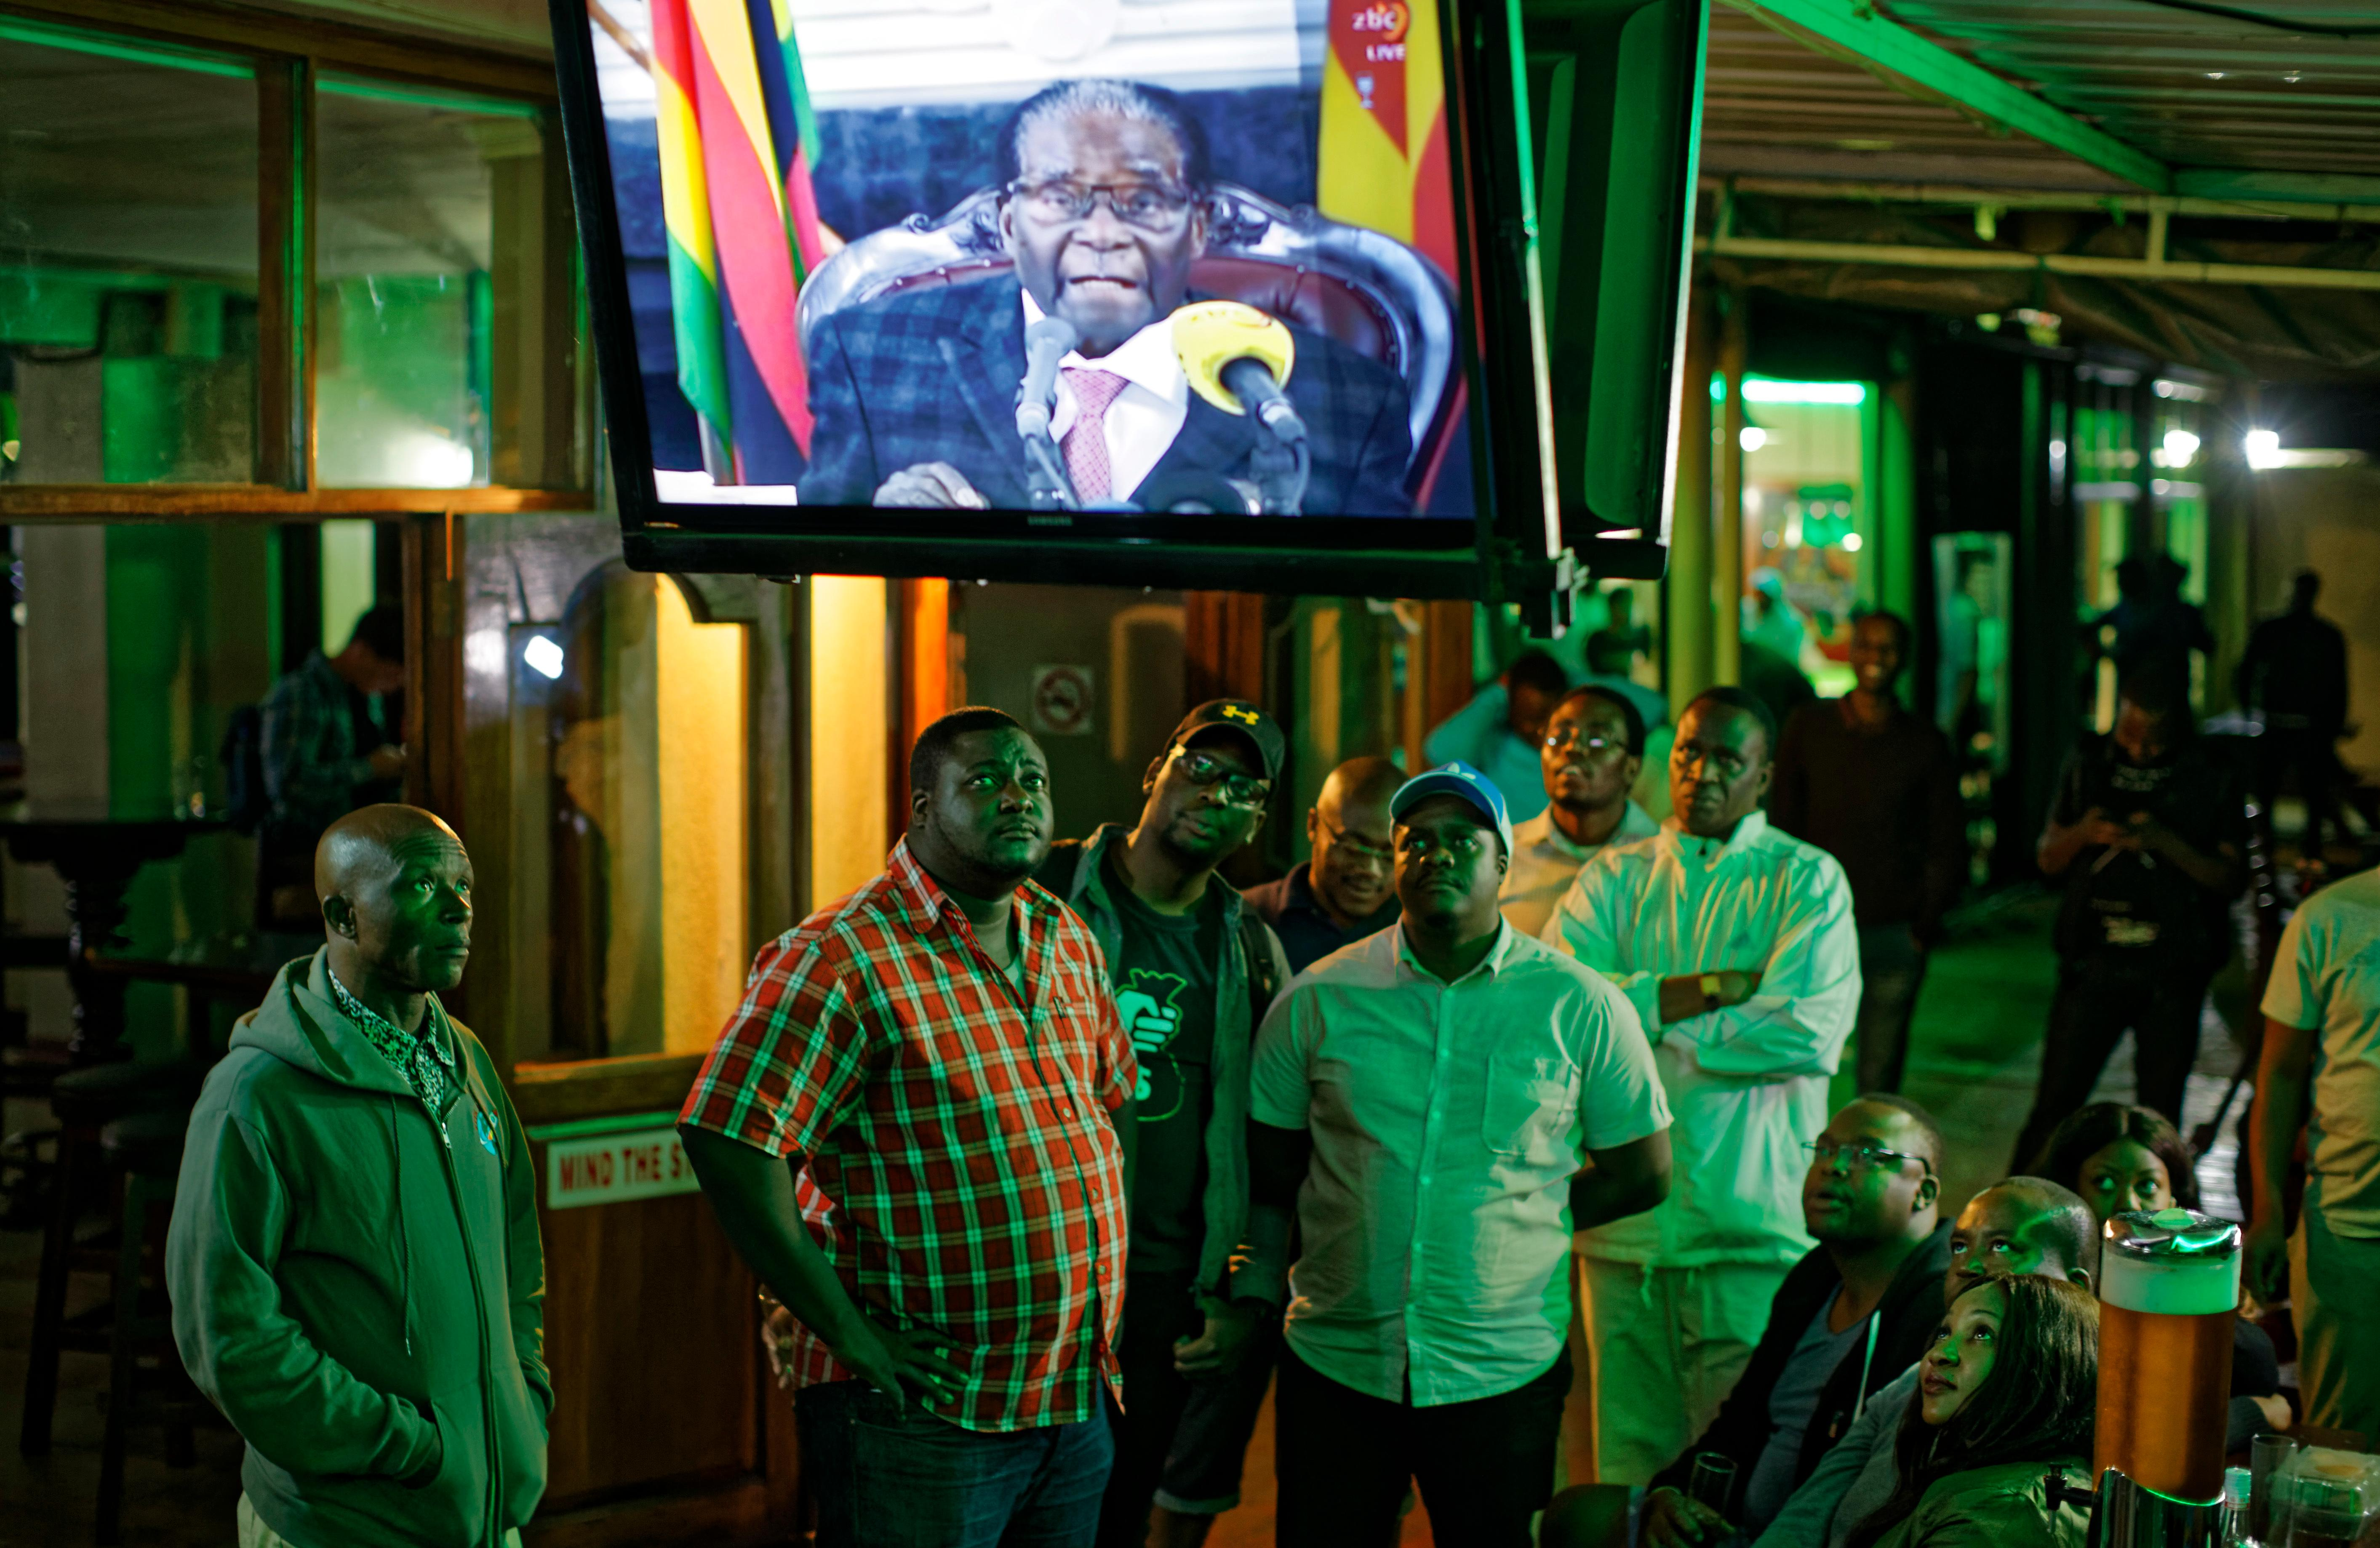 Disappointed Zimbabweans watch a televised address to the nation by President Robert Mugabe at a bar in downtown Harare, Zimbabwe Sunday, Nov. 19, 2017.{&amp;nbsp;} (AP Photo/Ben Curtis)<p></p>